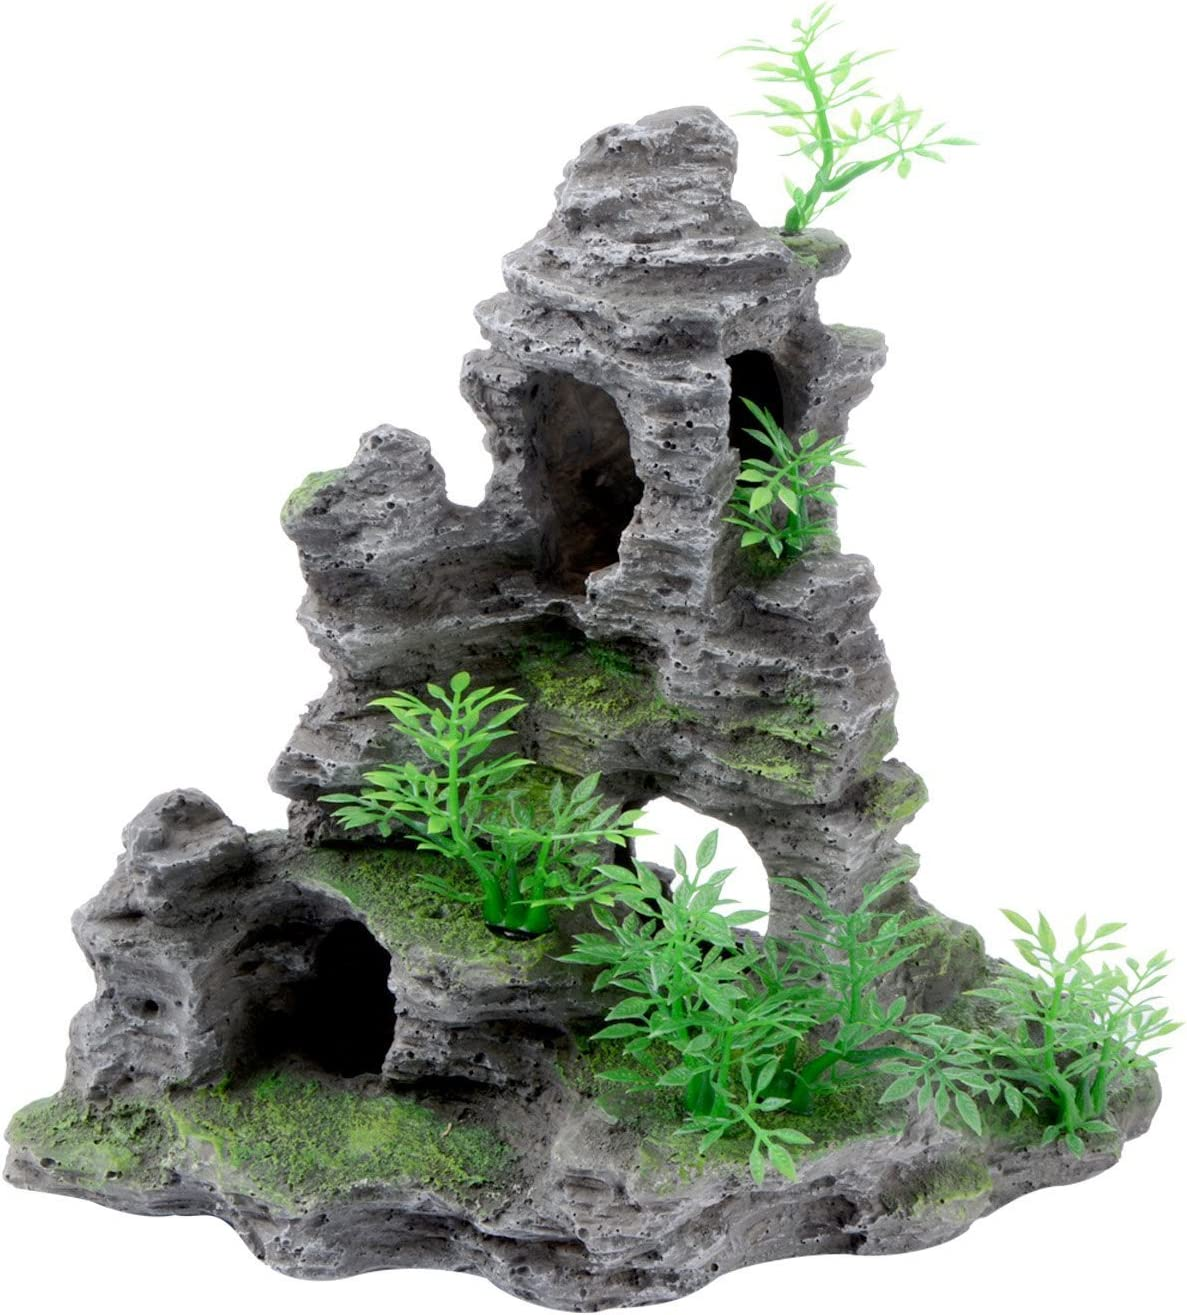 Saim Mountain View Aquarium Ornament Fish Tank Decoration-Large Sizes